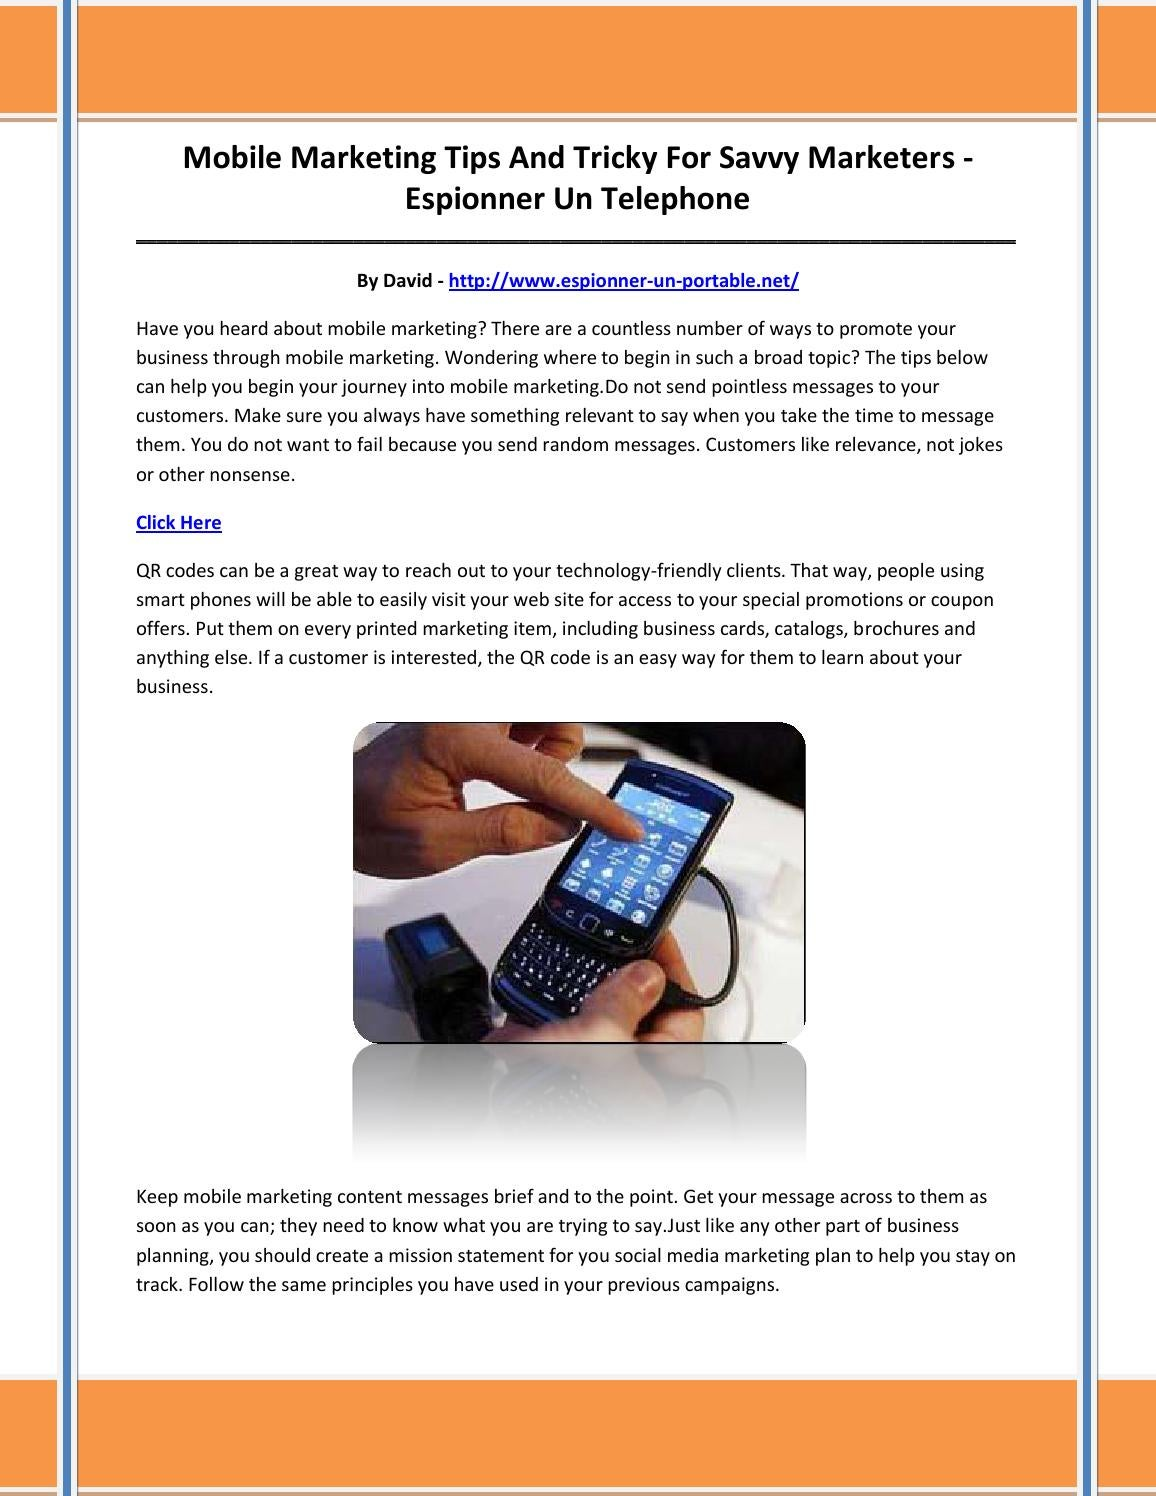 Espionner un telephone by sghifduh issuu - Espionner un portable a distance ...